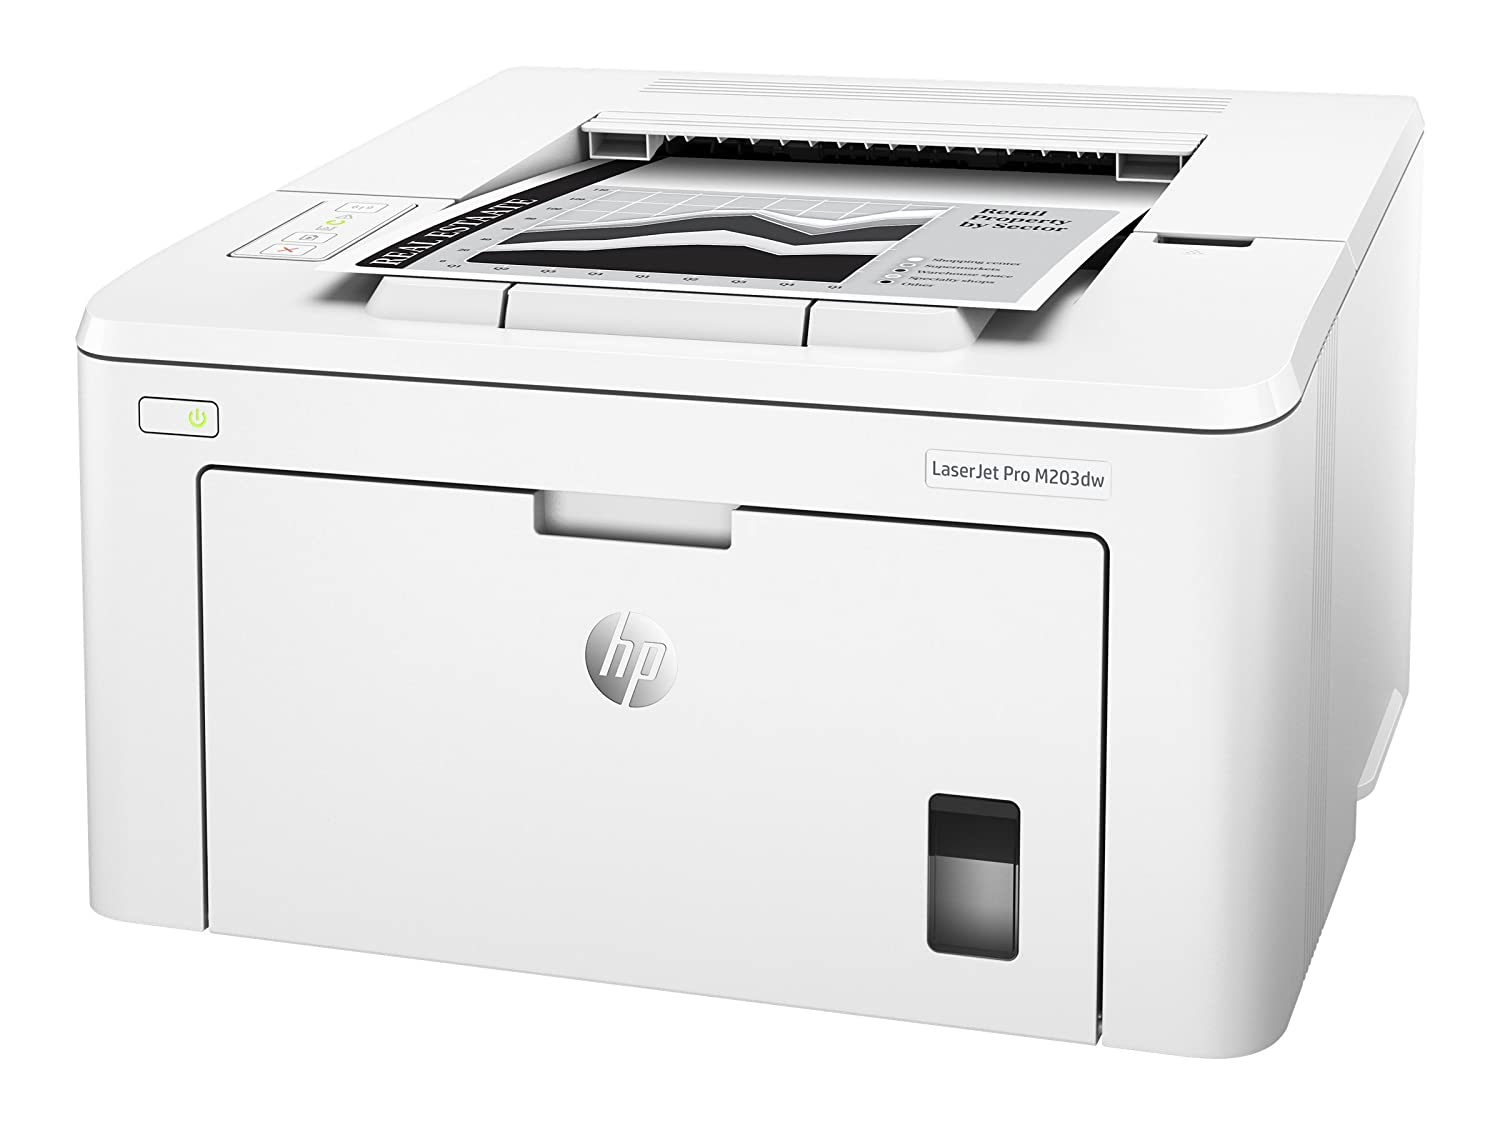 HP LaserJet Pro M203dw Wireless Laser Printer (G3Q47A) with Standard Yield Black Toner Cartridge